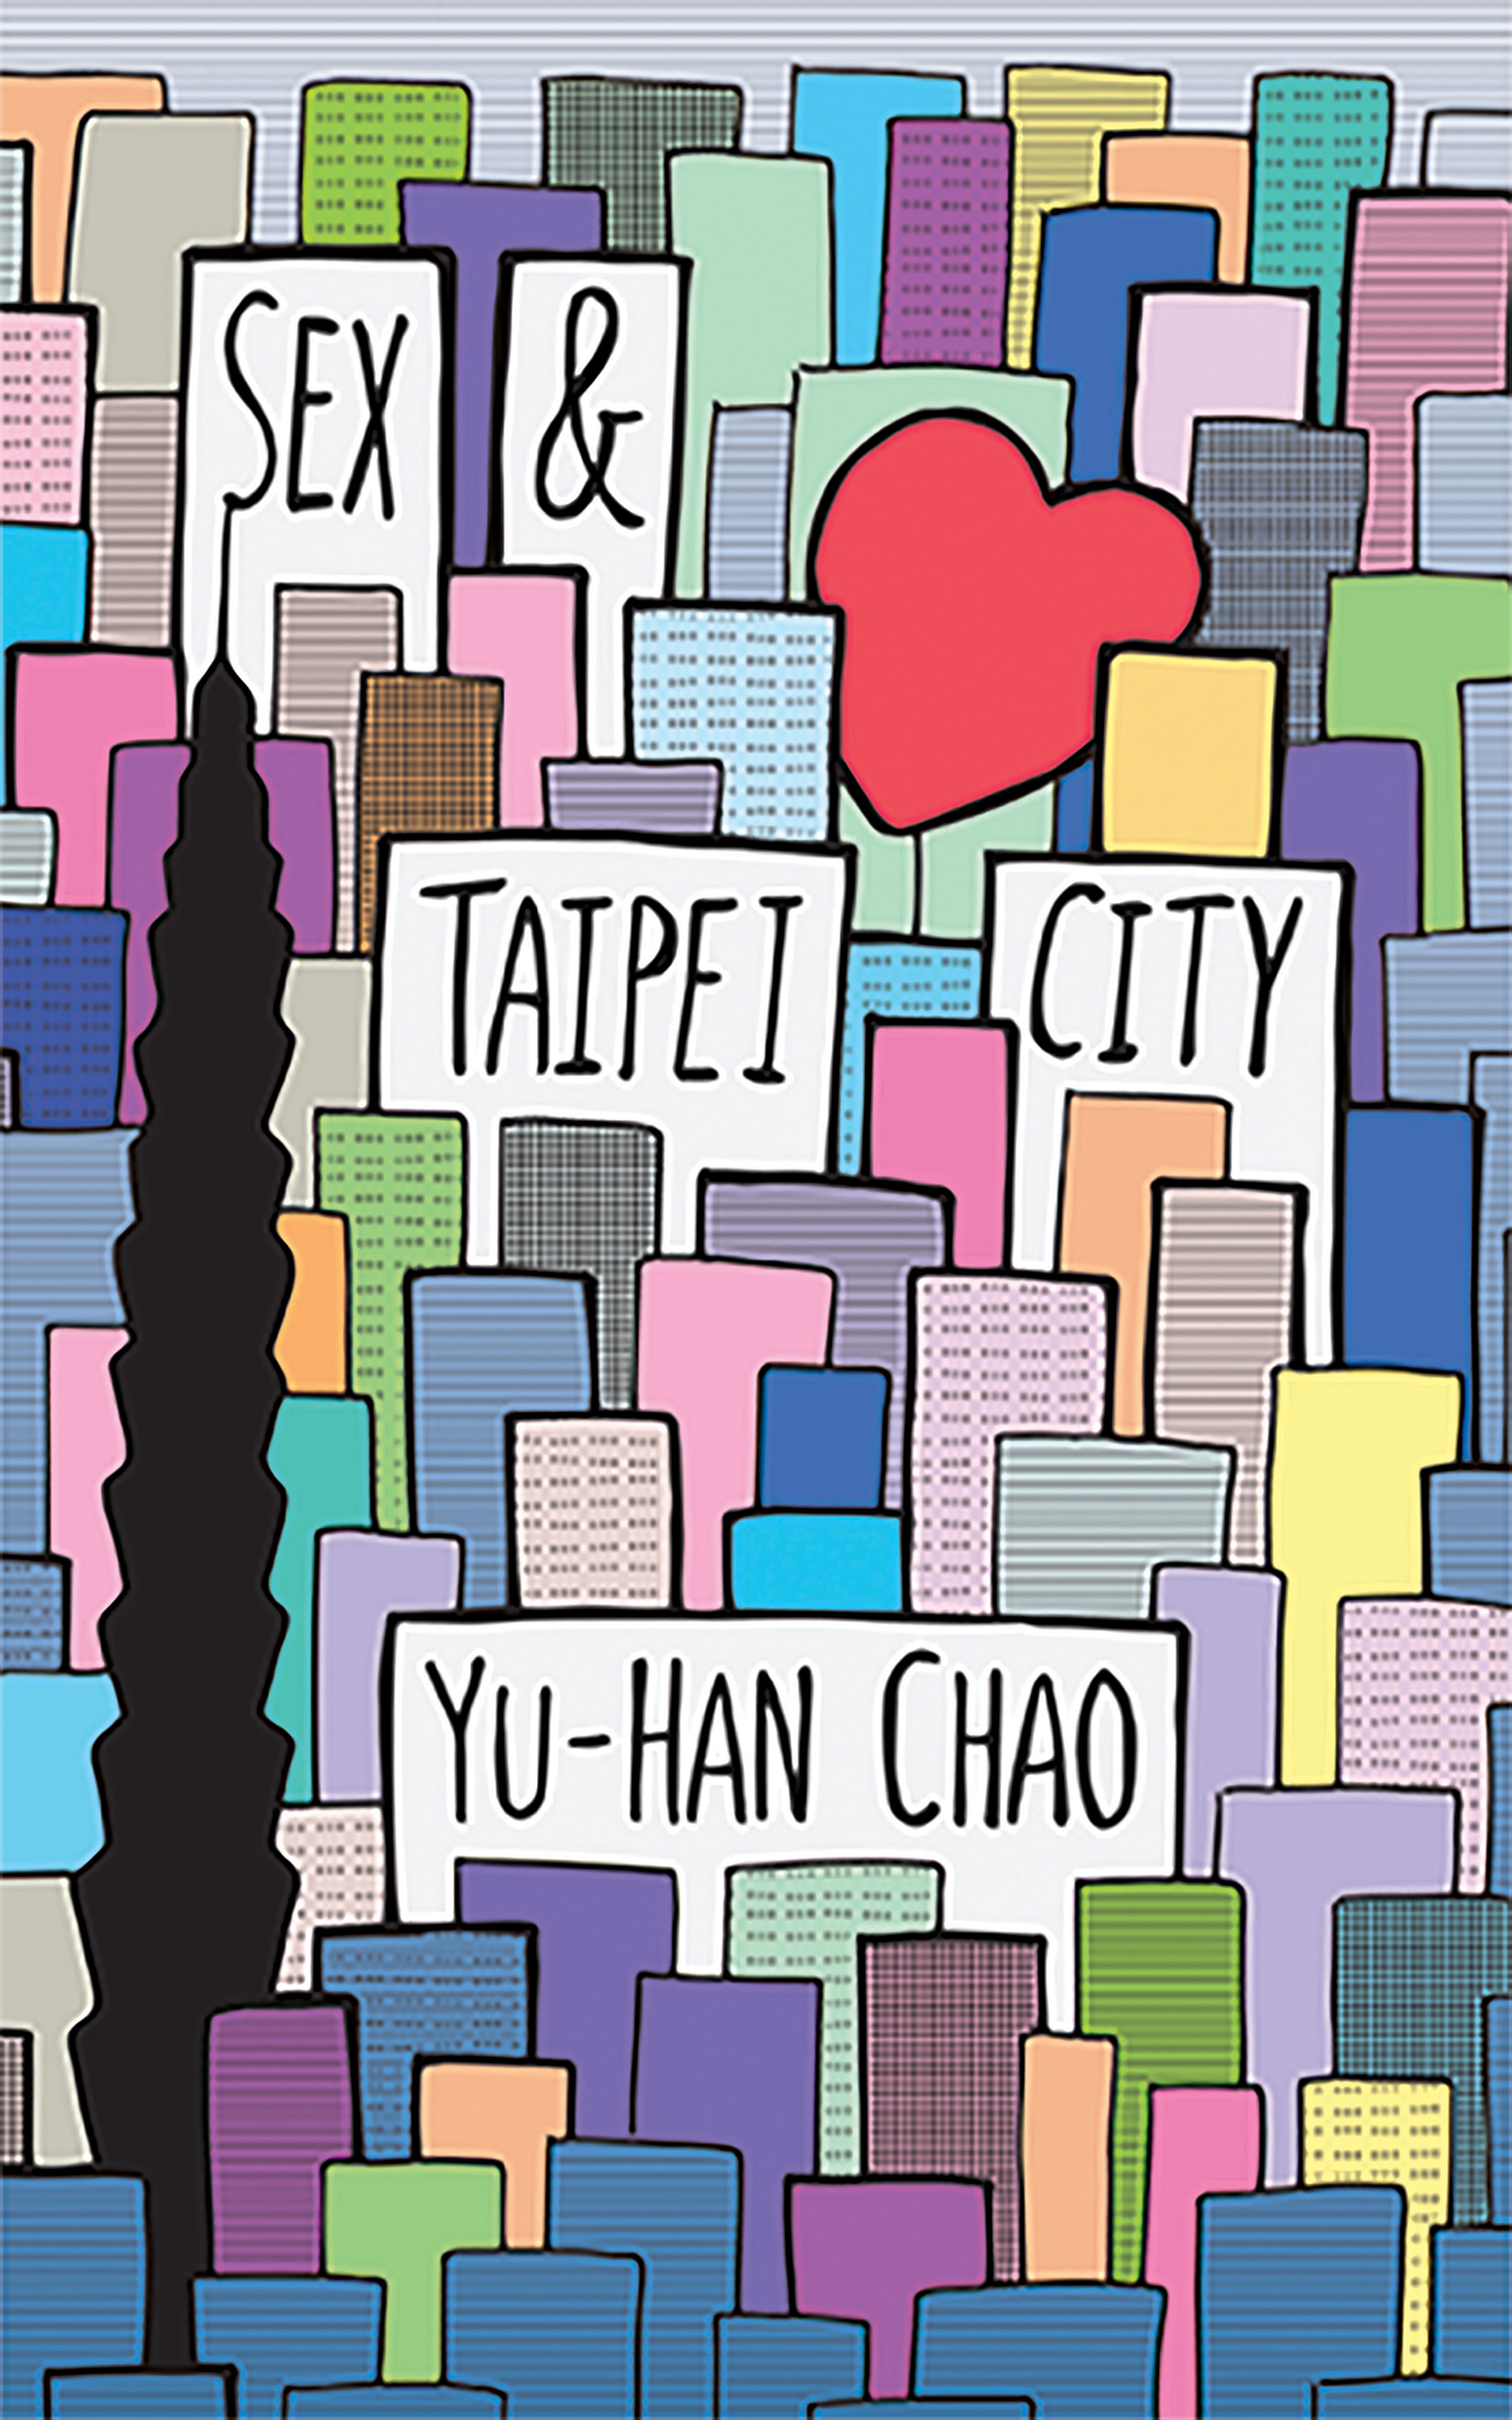 A colorful graphic design of a city landscape with skyscrapers and black script that reads Sex and Tapei City by Yu-Han Chao.